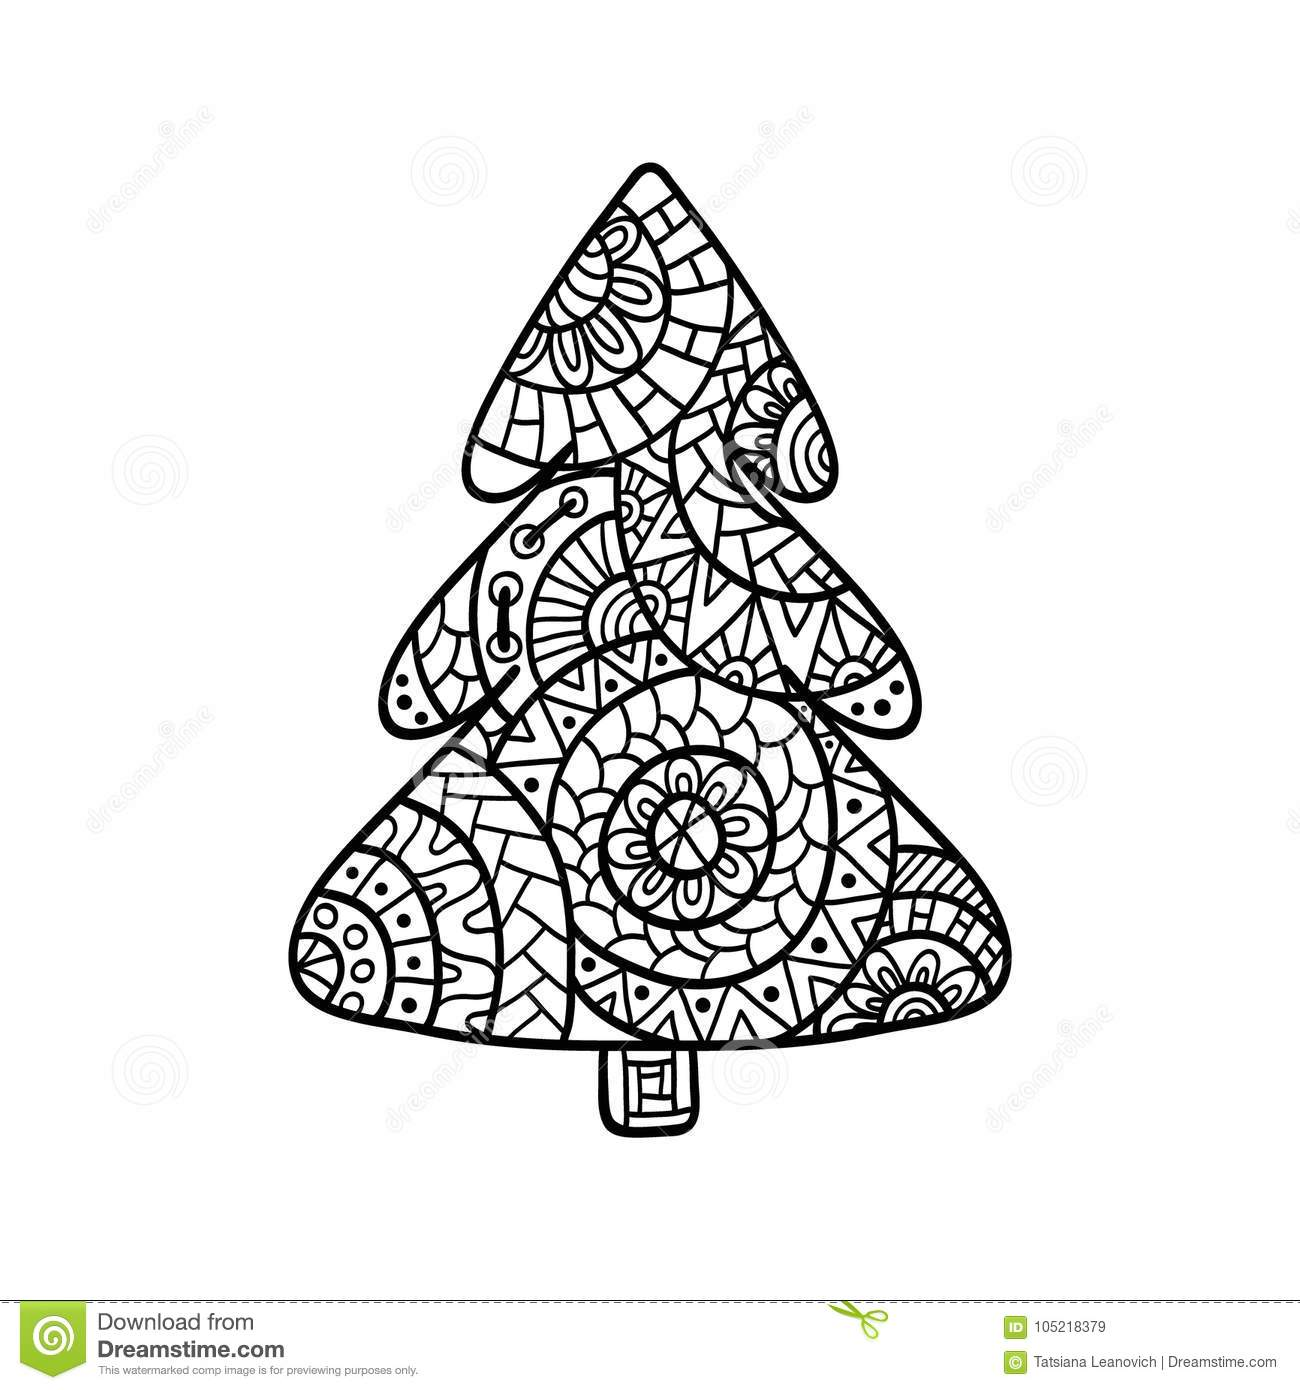 Christmas Zentangle Coloring With Card In Style For Adult Anti Stress Stock